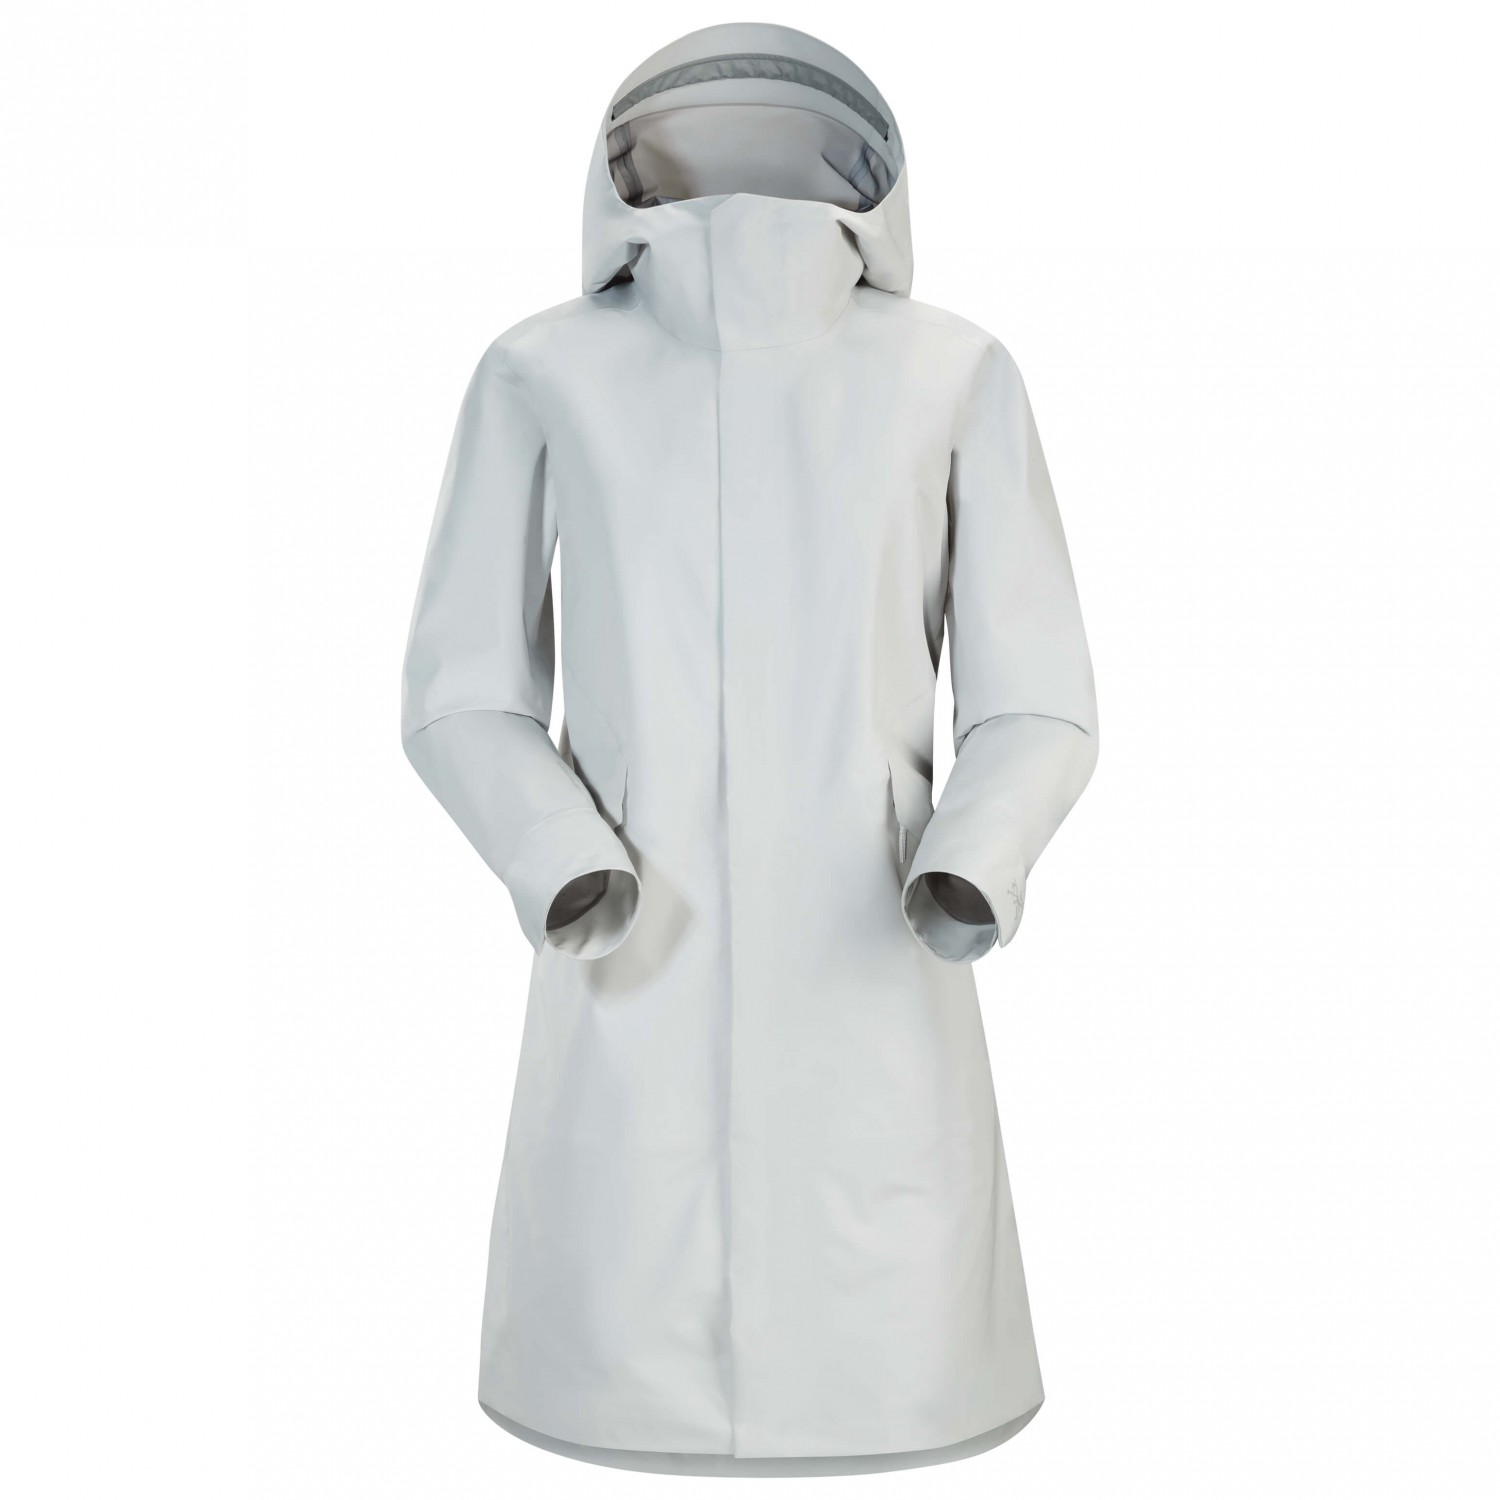 Versandkostenfrei Andra Damen Coat Mantel Arc'teryx qwRH4On0